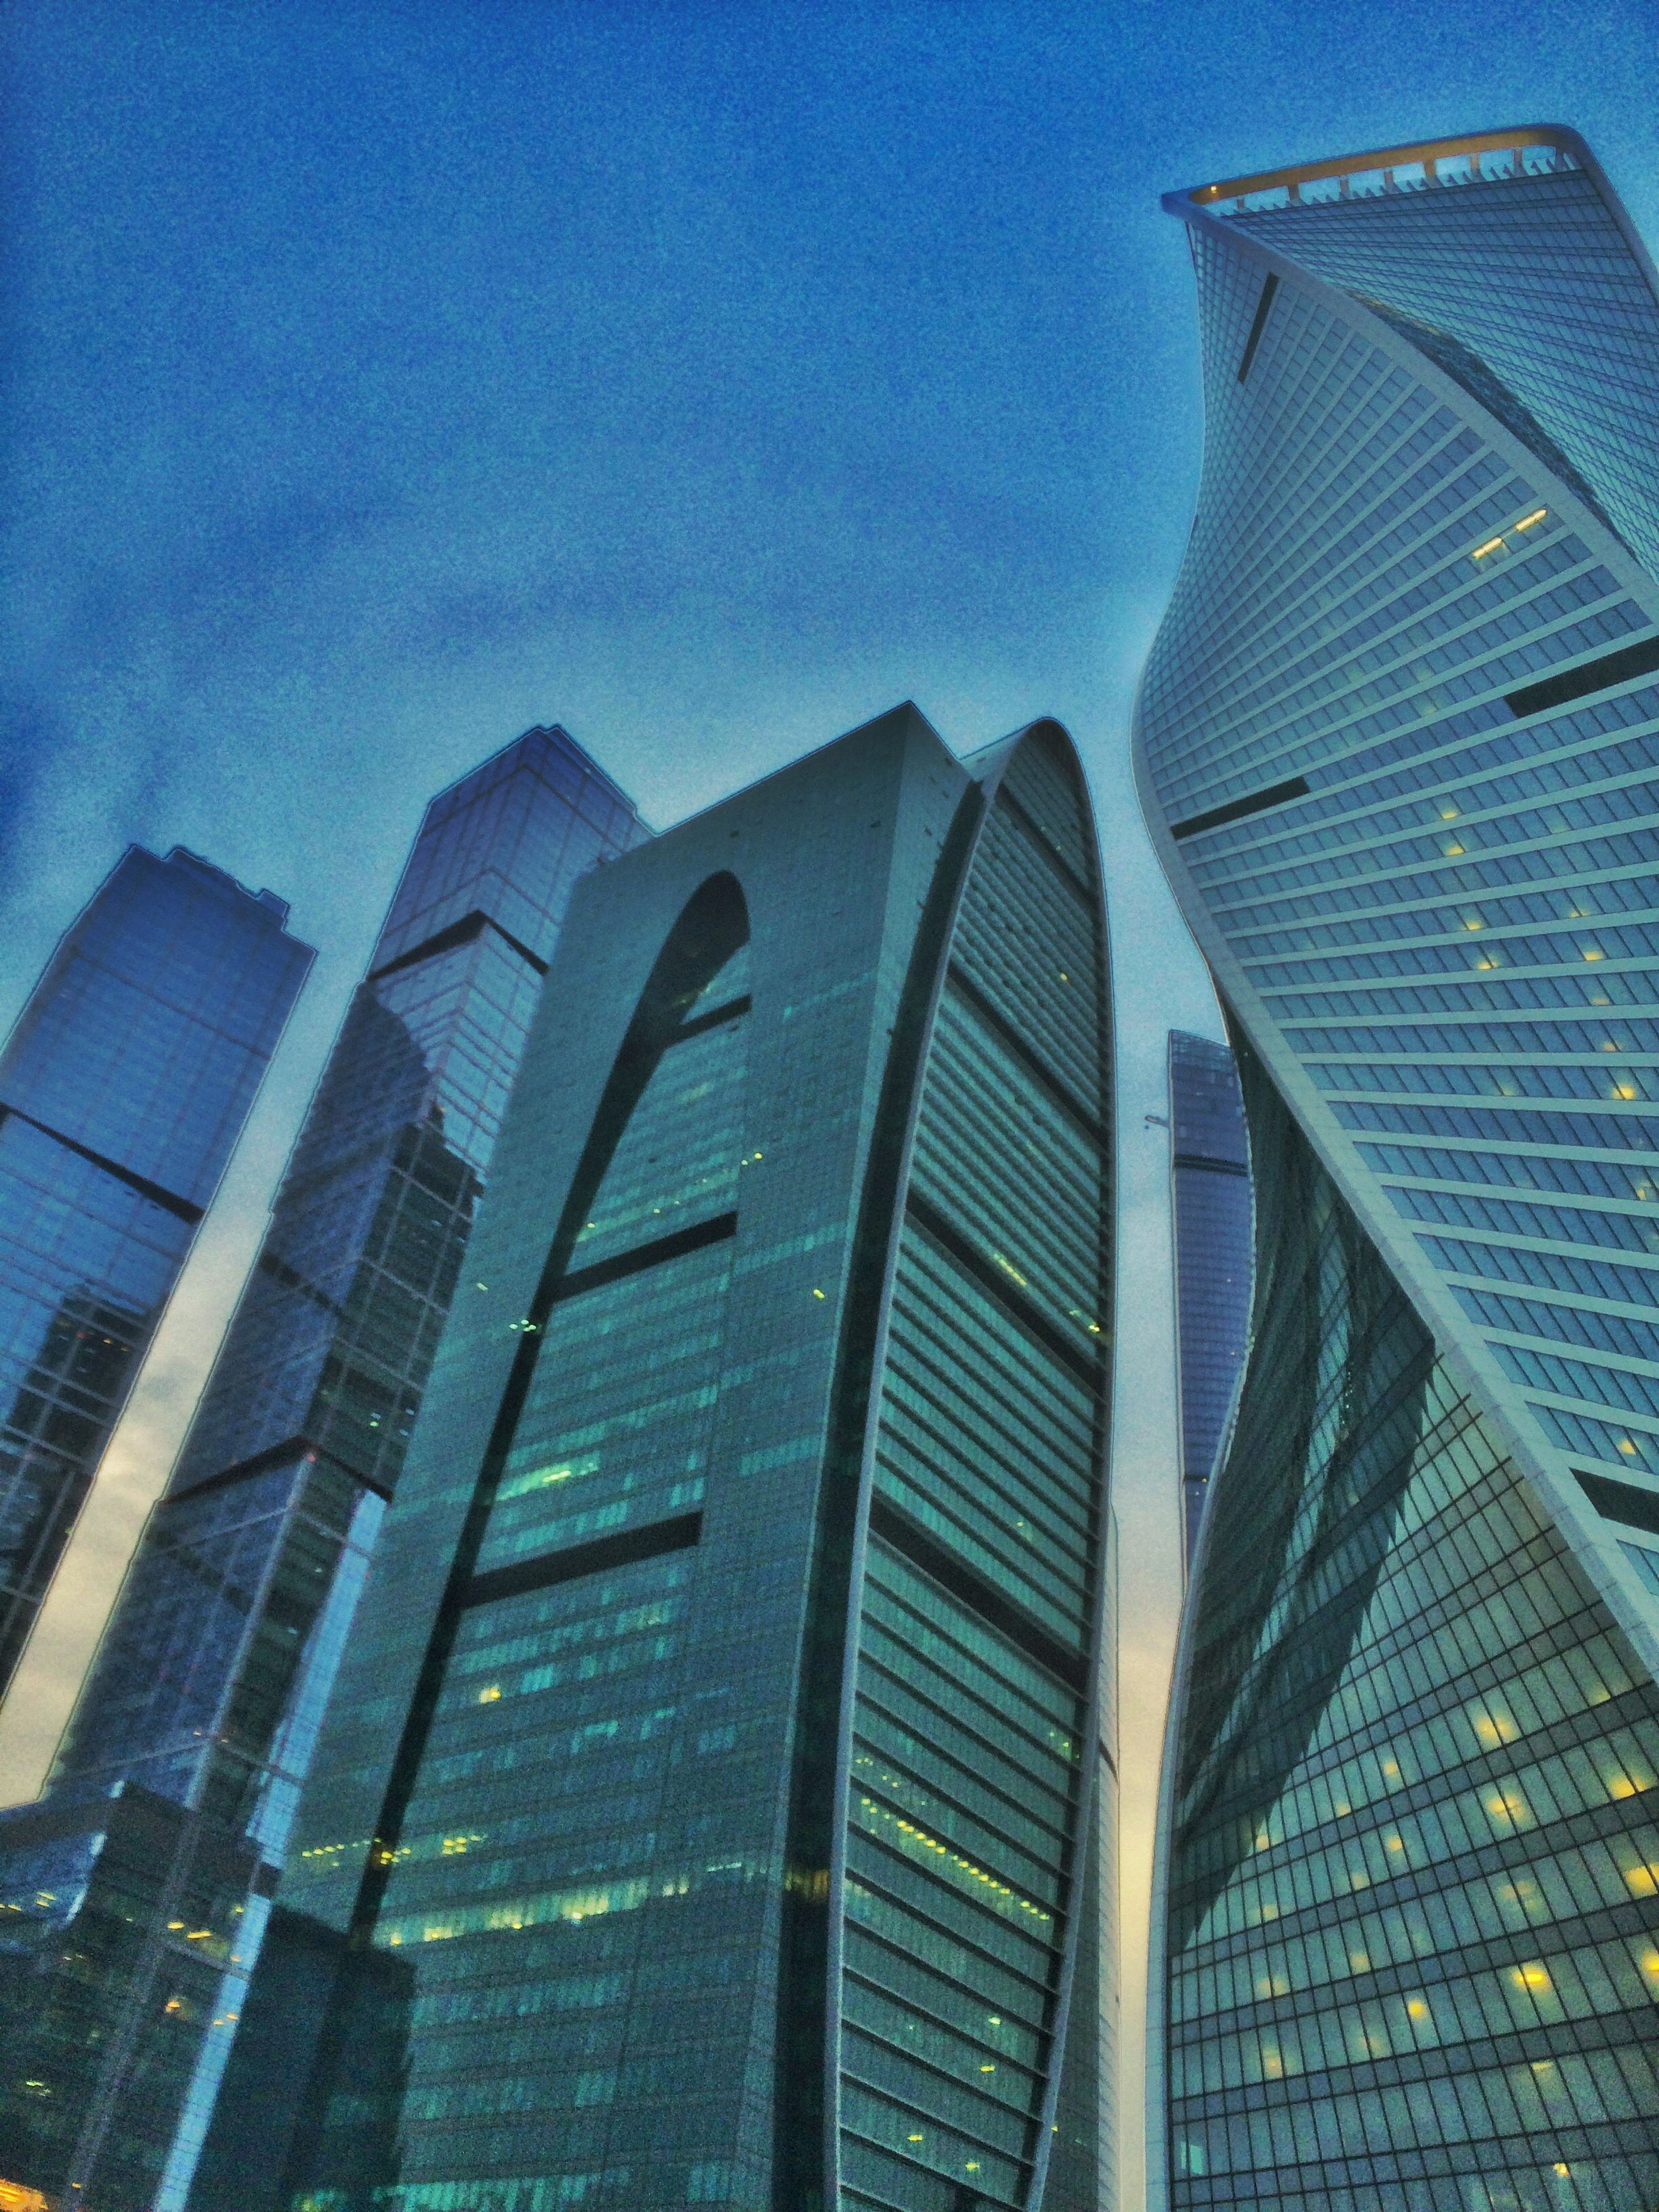 architecture, building exterior, built structure, low angle view, modern, skyscraper, office building, city, tall - high, sky, tower, blue, building, glass - material, cloud - sky, no people, outdoors, capital cities, tall, day